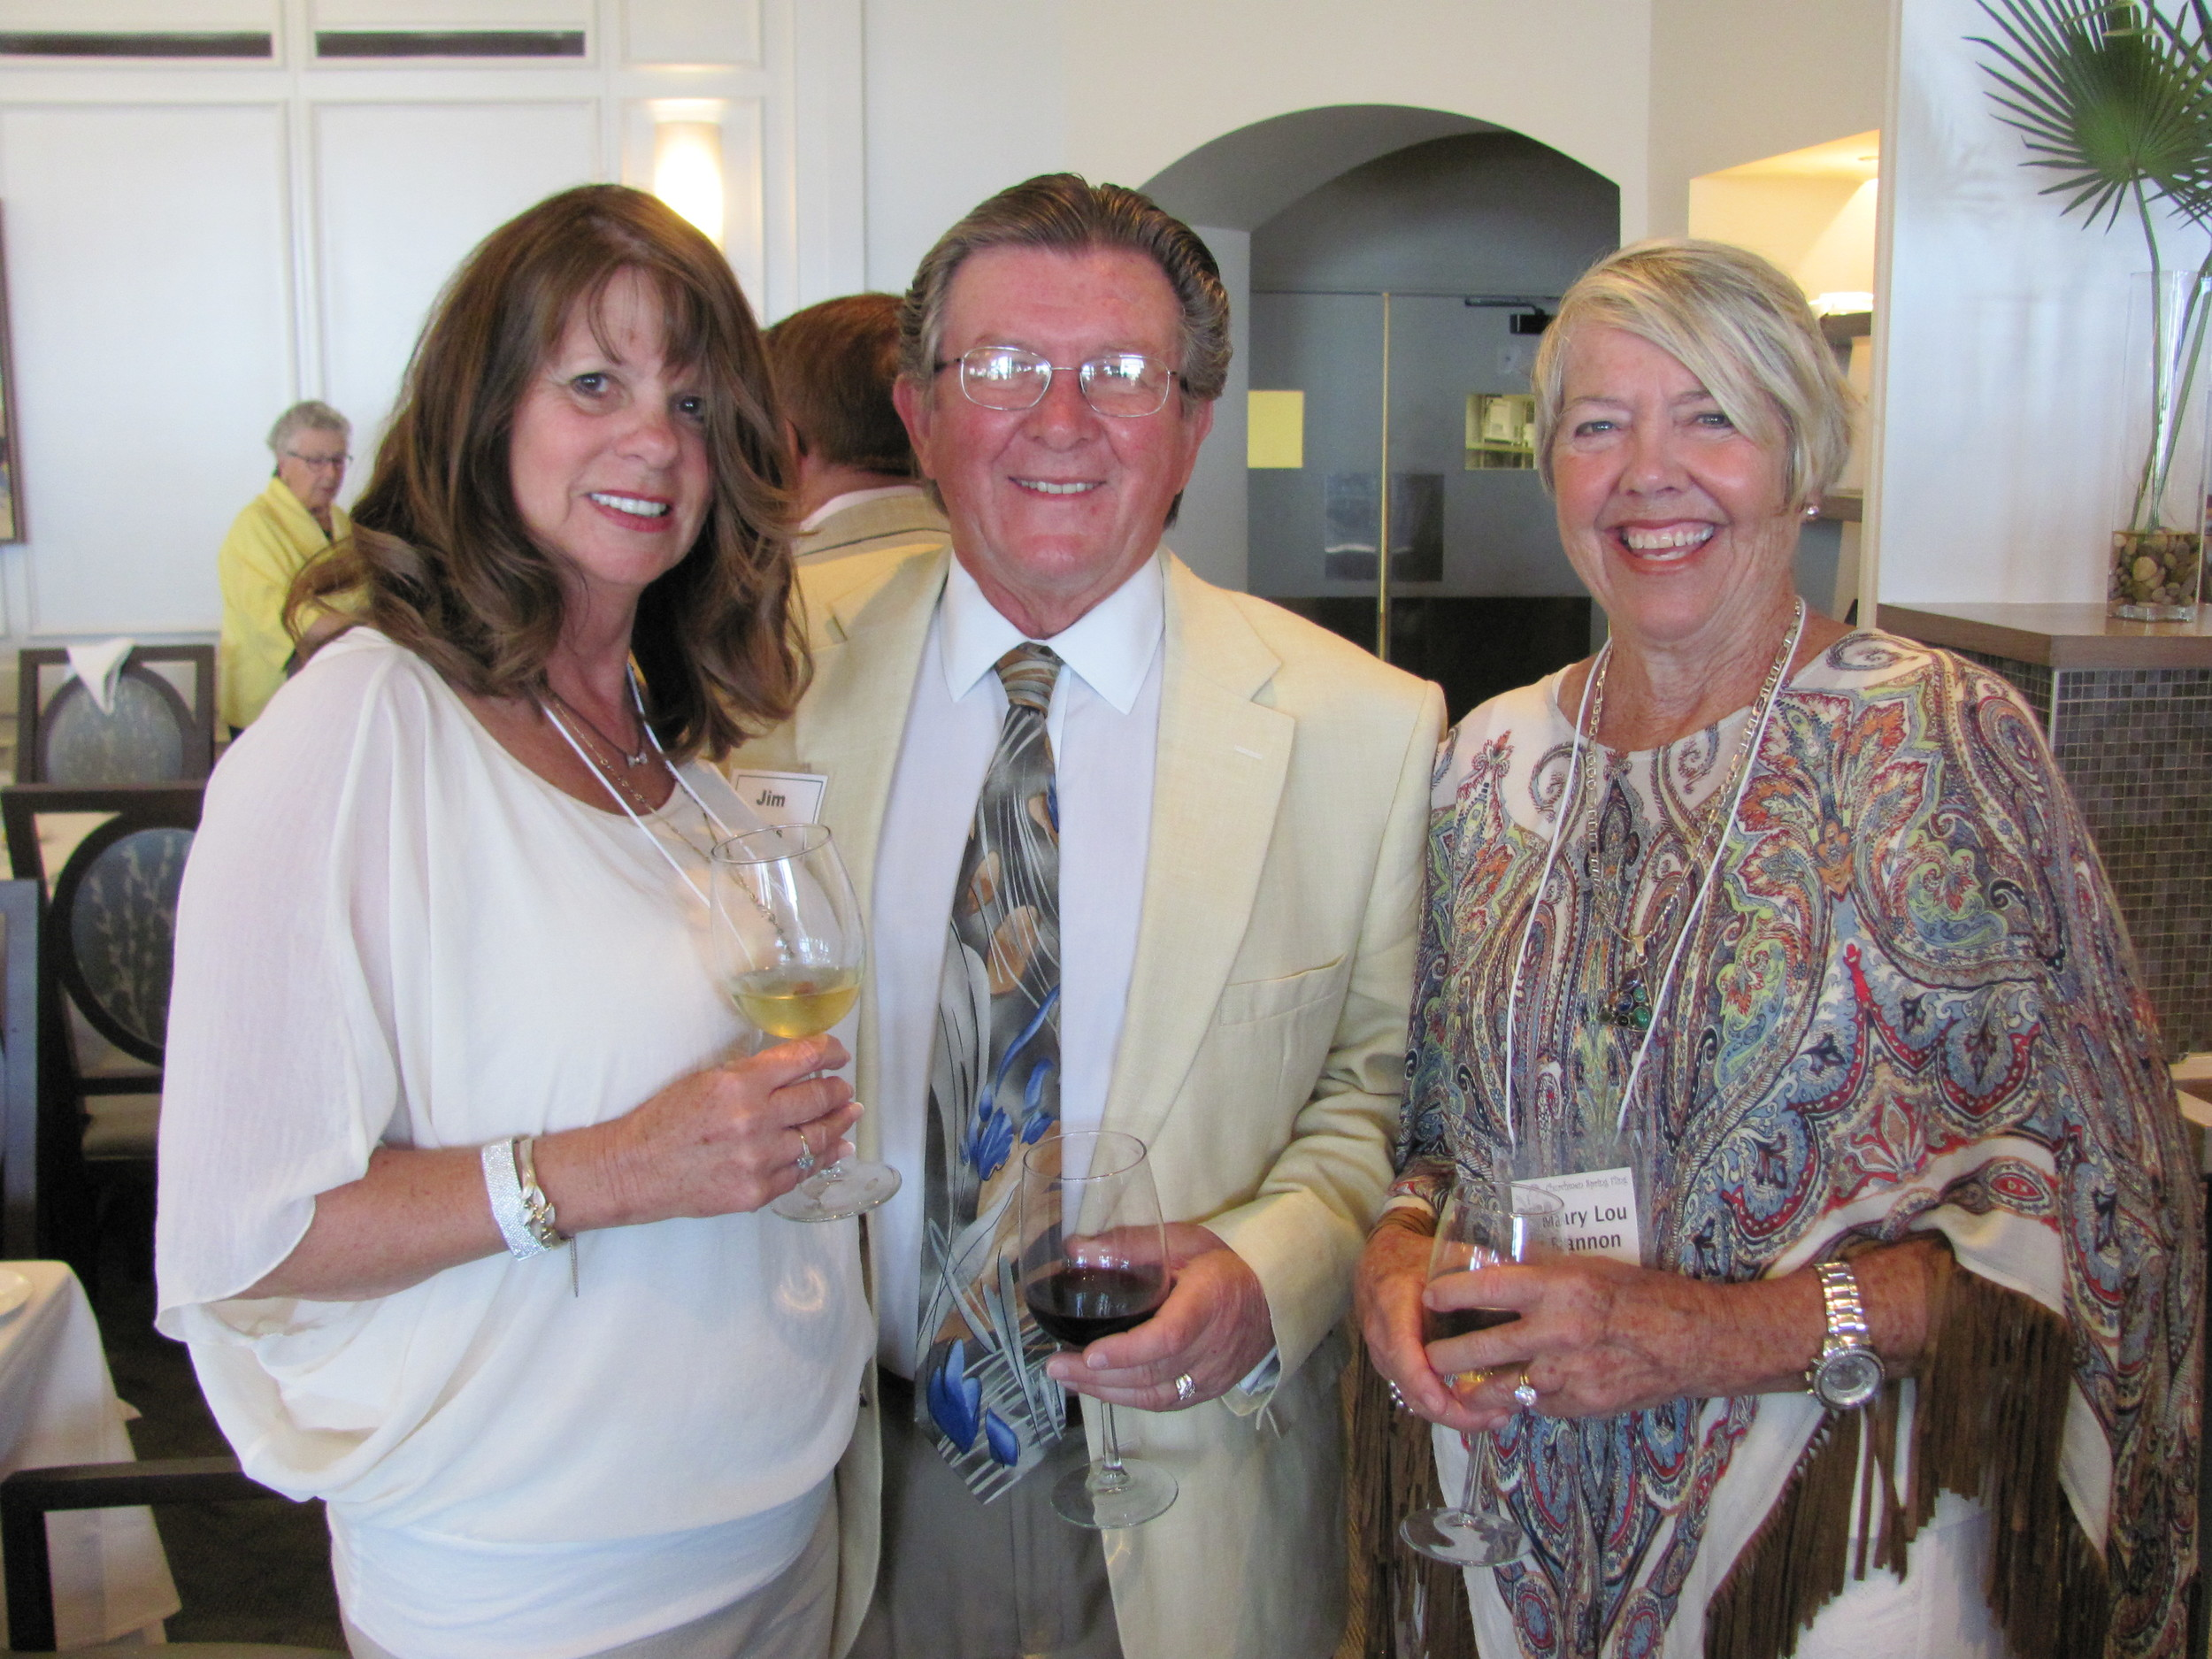 Deborah and Jim Ross and Mary Lou Bannon